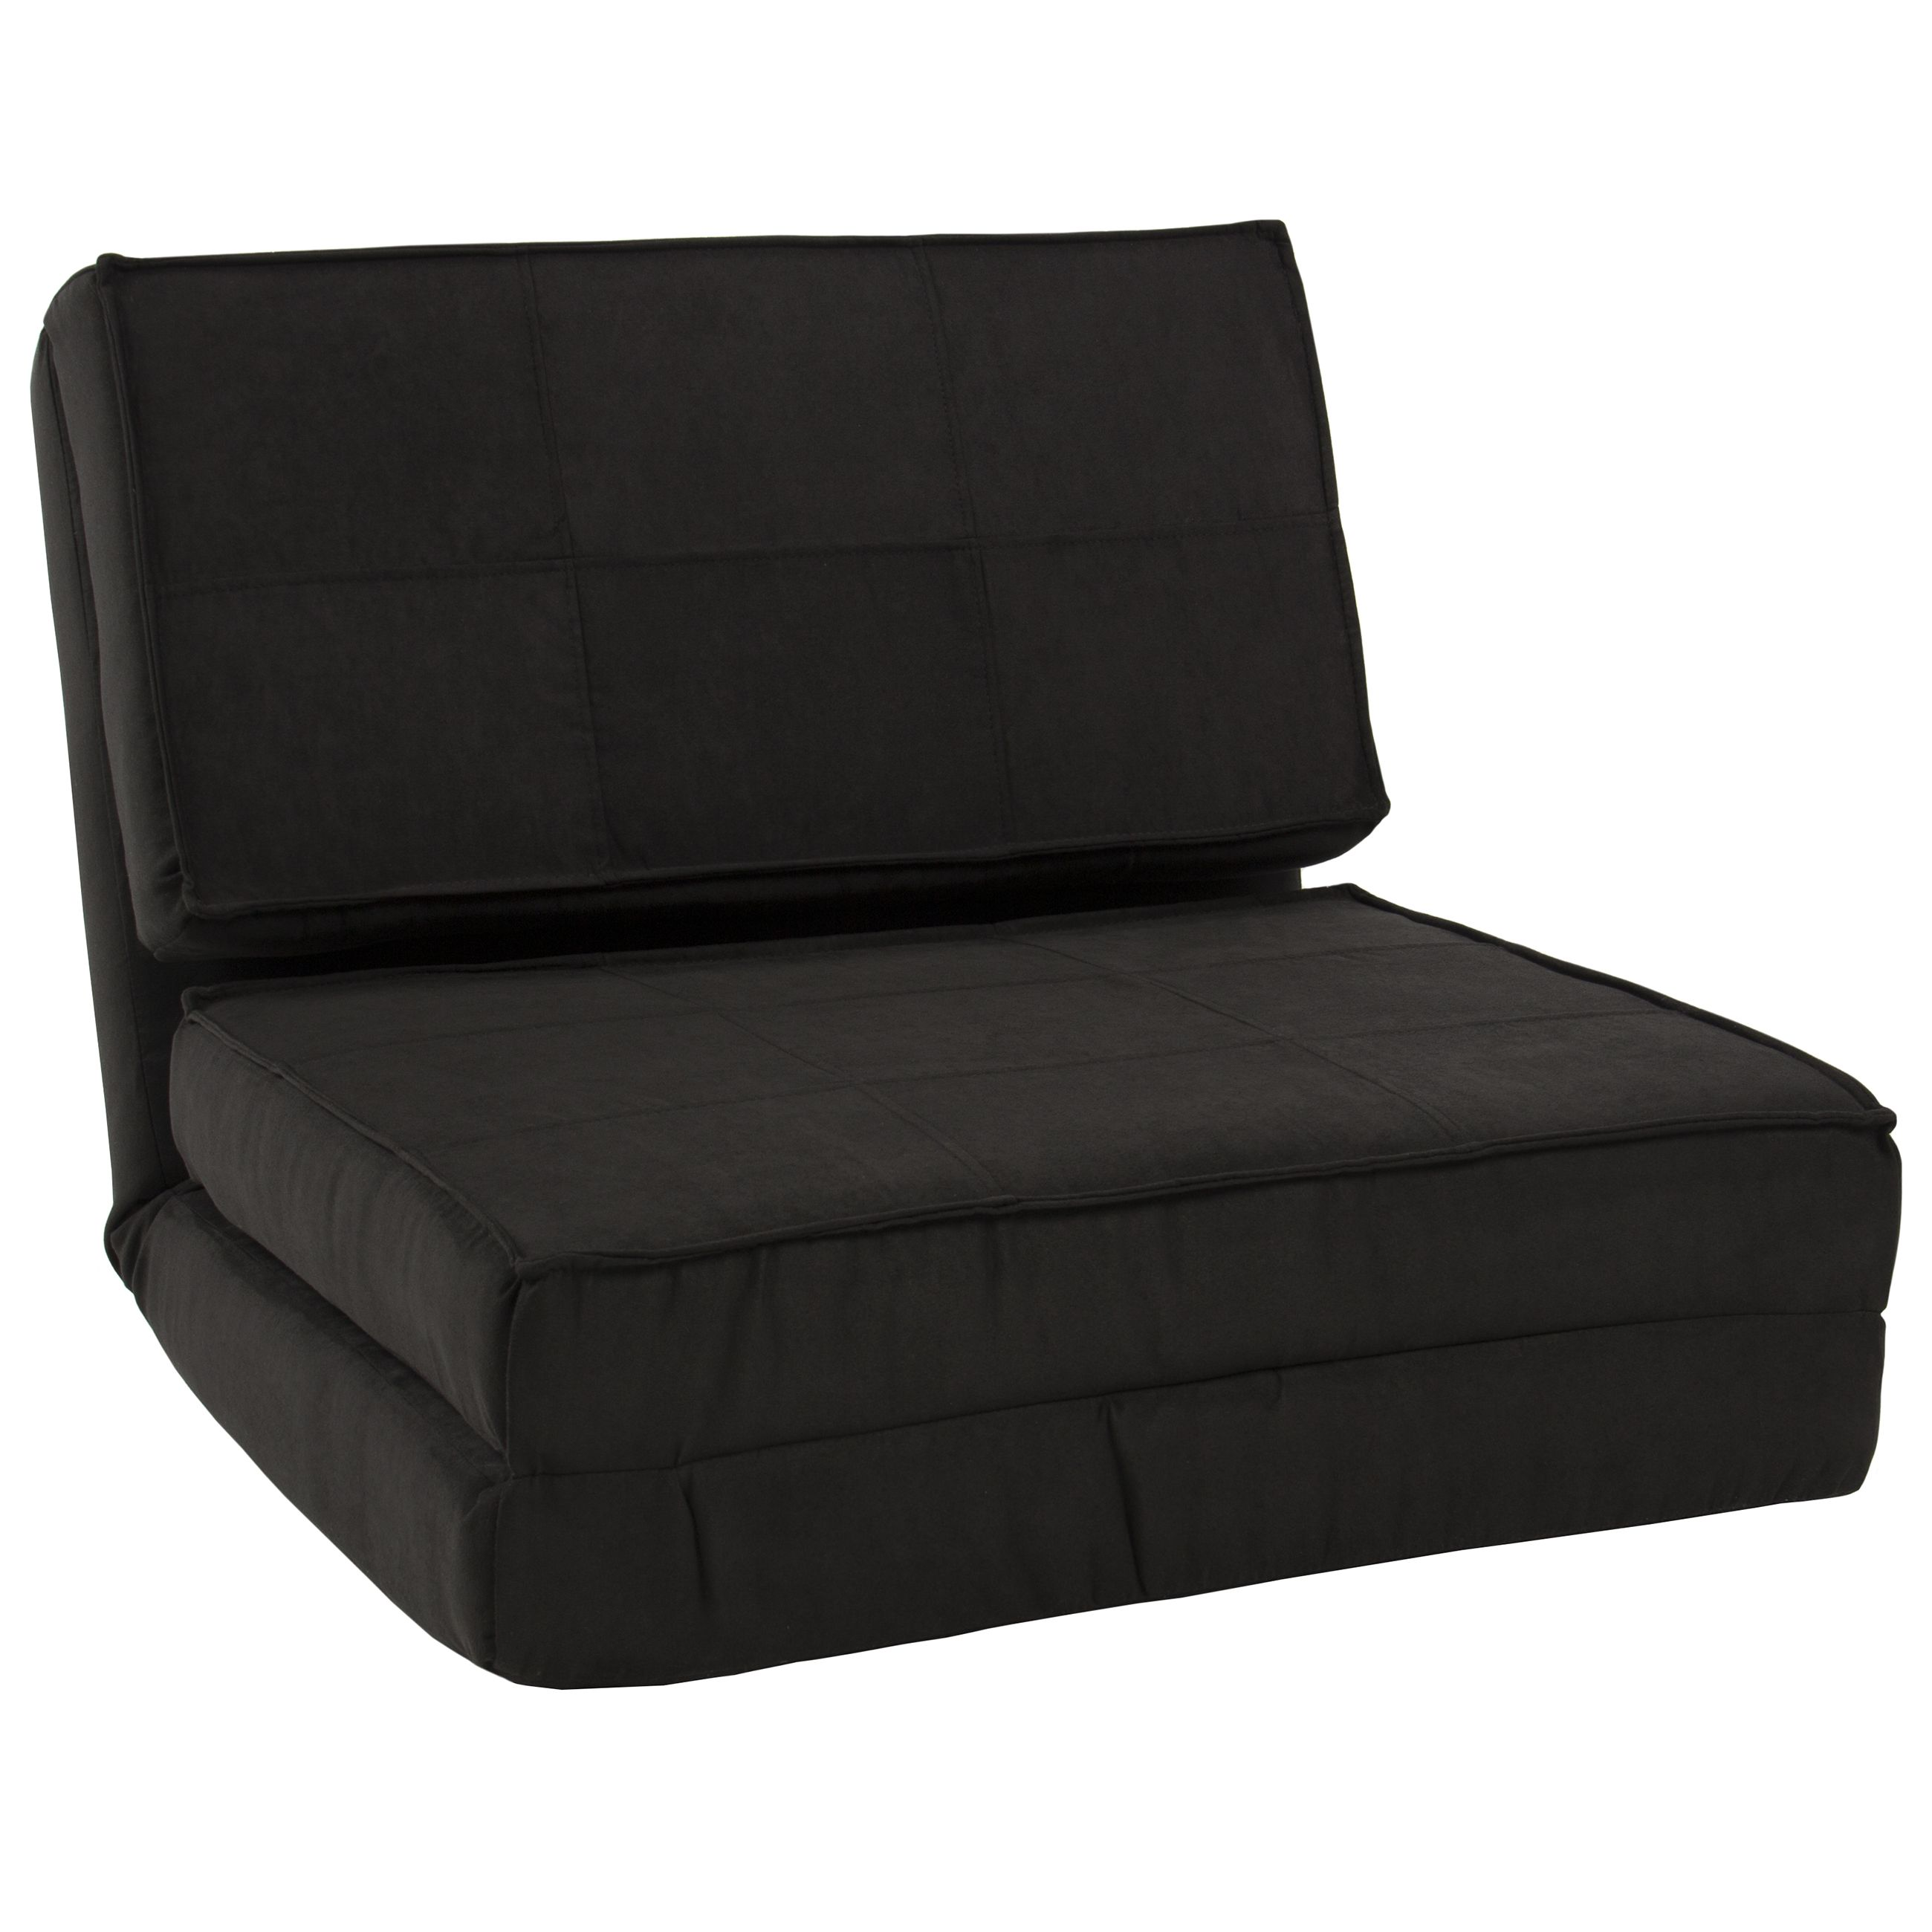 awesome Folding Couch , Inspirational Folding Couch 76 In